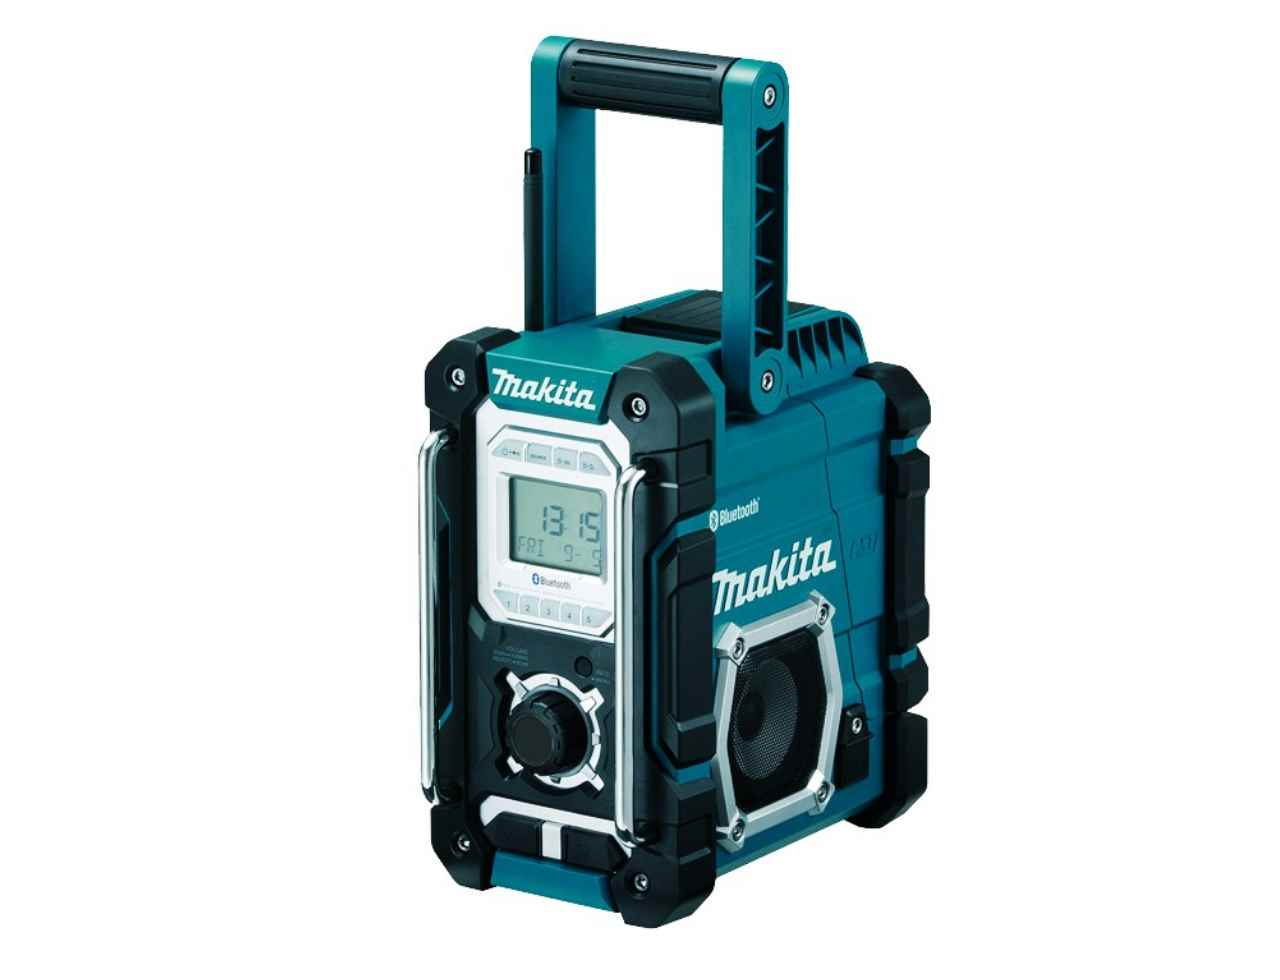 Makita dmr104 job site radio with dab 240v - Radio makita dmr108 ...